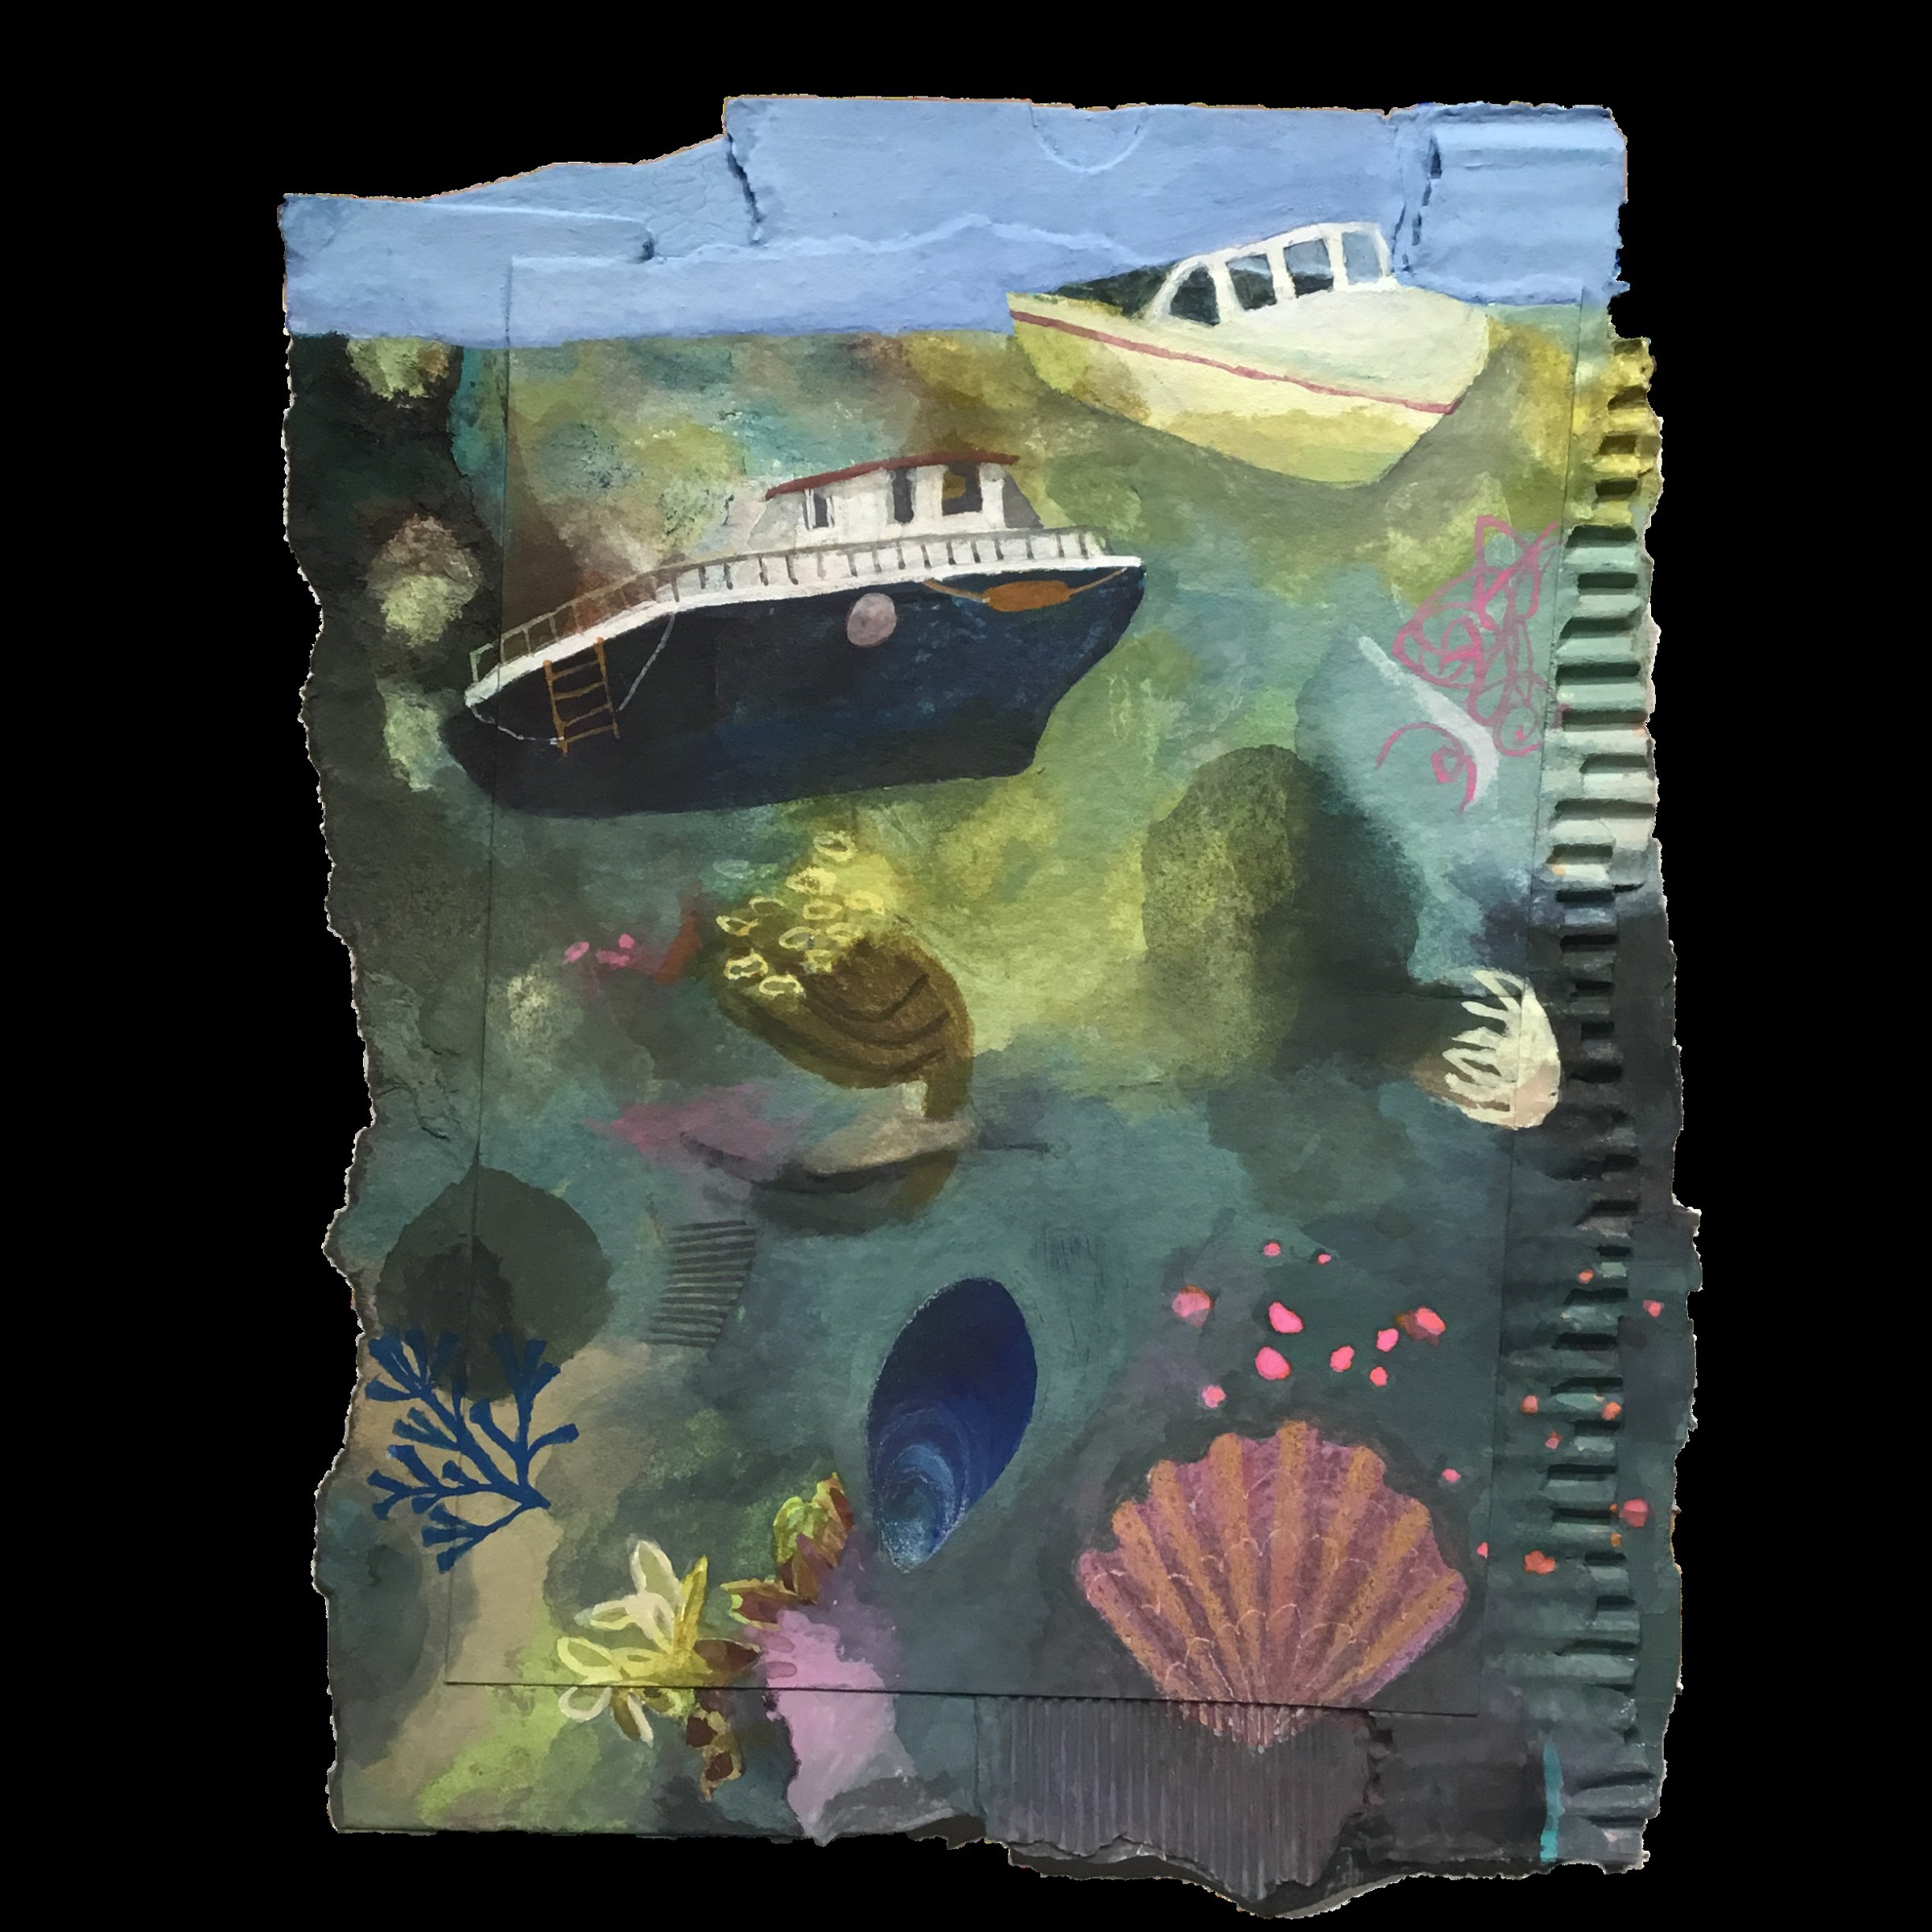 """<span class=""""link fancybox-details-link""""><a href=""""/artists/146-gertie-young/works/12334-gertie-young-low-tide-at-whitstable/"""">View Detail Page</a></span><div class=""""artist""""><span class=""""artist""""><strong>Gertie Young</strong></span></div><div class=""""title""""><em>Low Tide at Whitstable</em></div><div class=""""medium"""">acrylic collage</div><div class=""""dimensions"""">Frame: 36 x 28 cm<br /> Artwork: 26 x 18 cm</div><div class=""""price"""">£250.00</div>"""